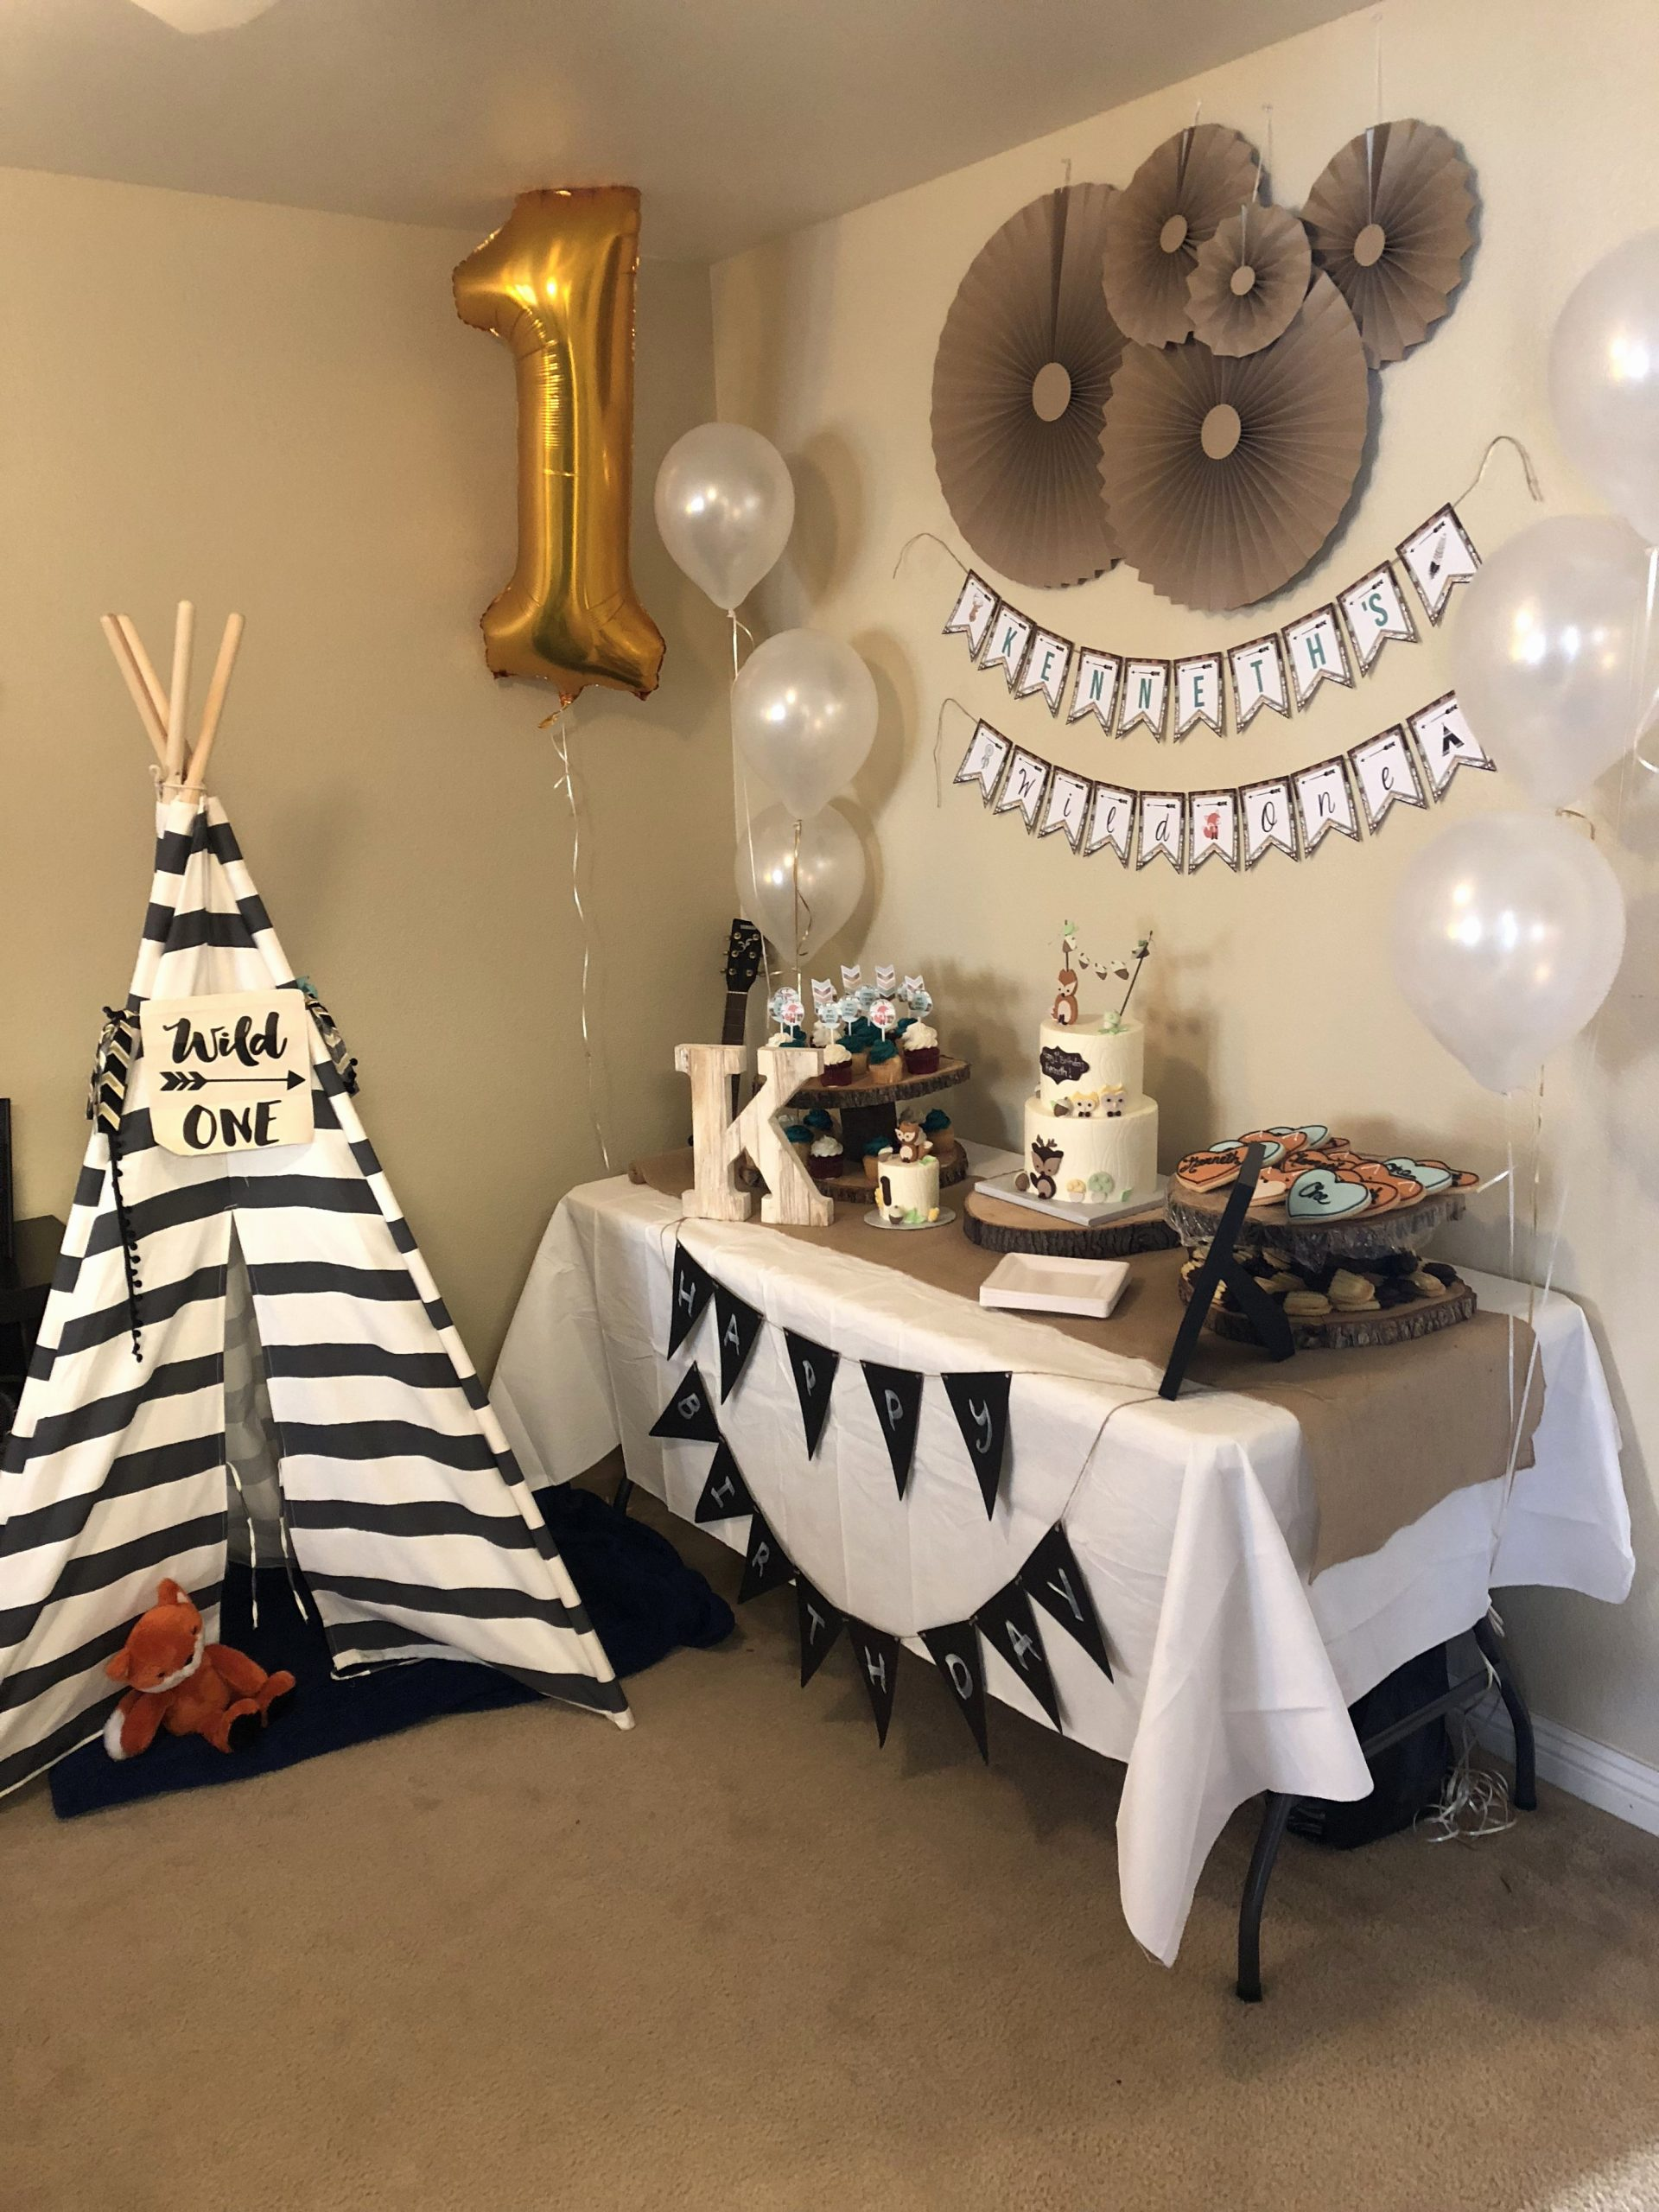 One Year Old Birthday Decoration Ideas New Kenneth S Wild One Birthday Party